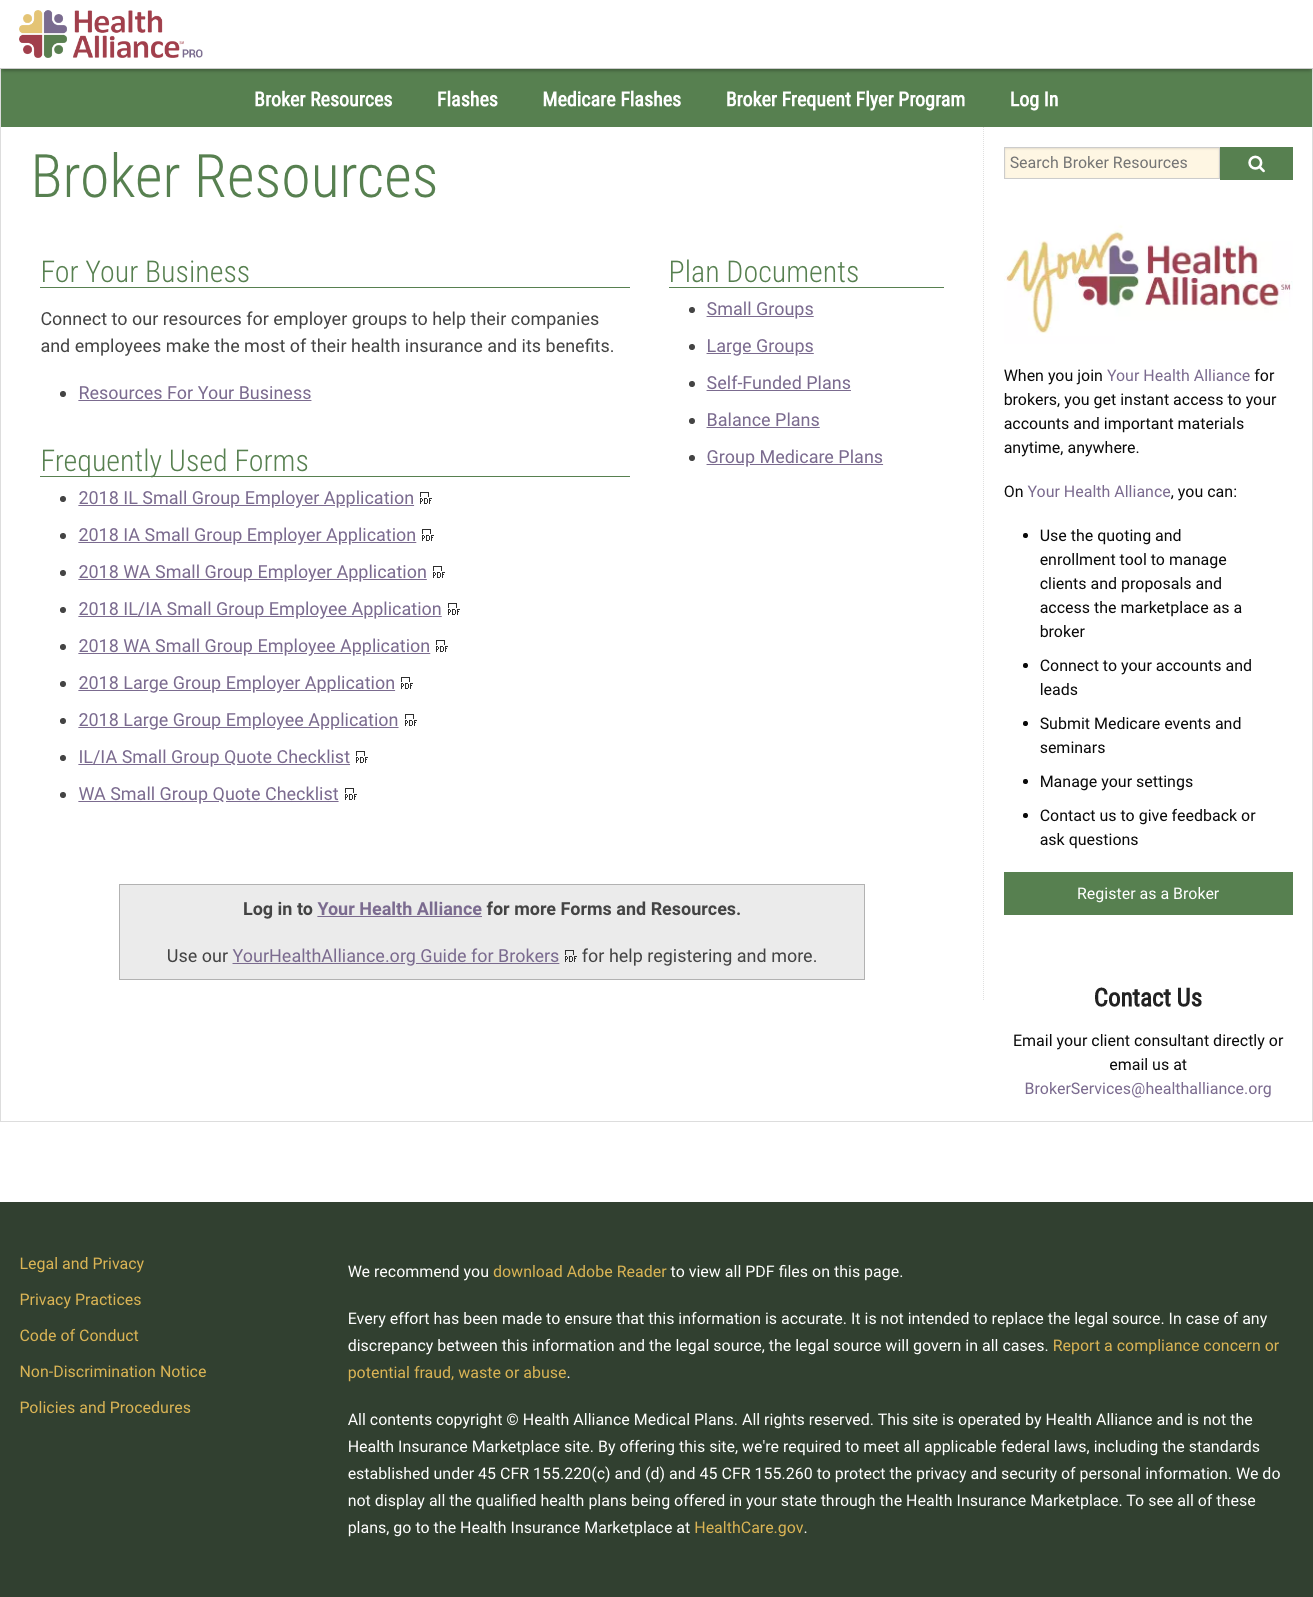 Broker resources landing page